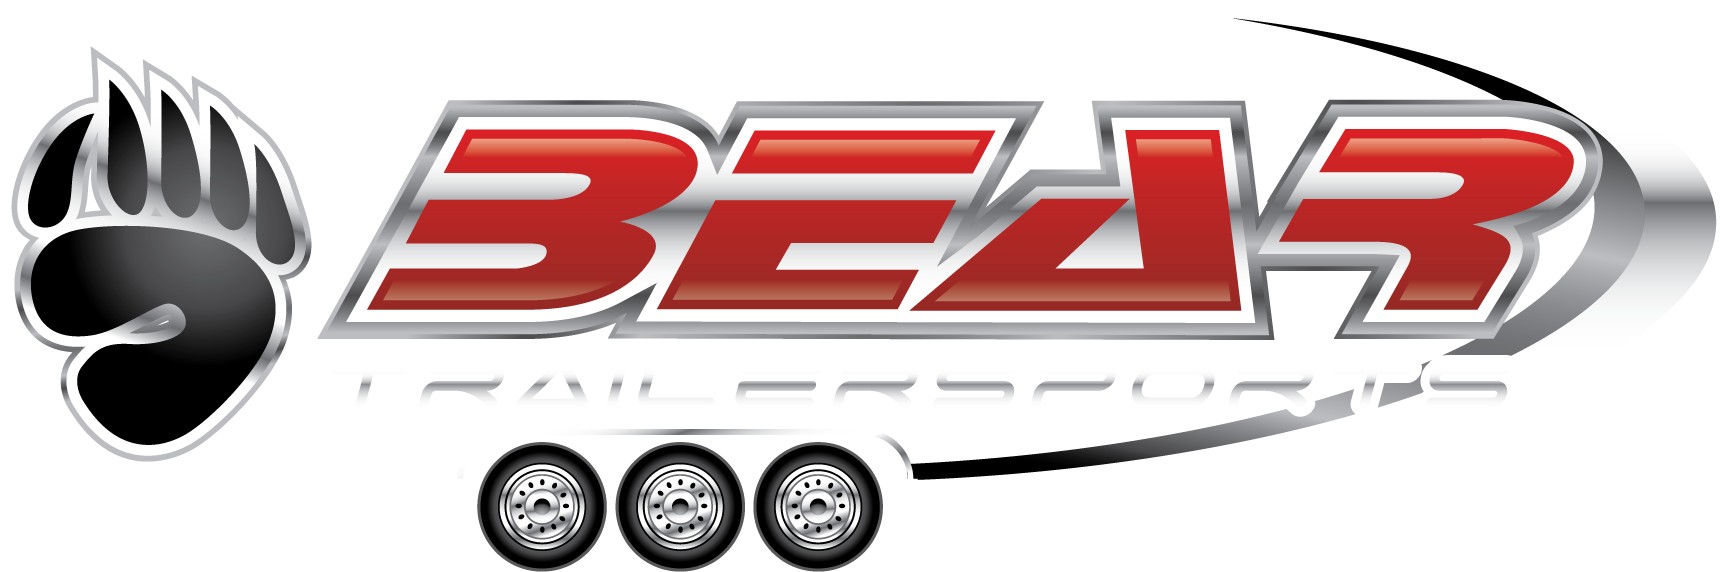 Trailer Hitches For Sale >> Ca Custom Trailer Hitches For Sale Bear Trailersports